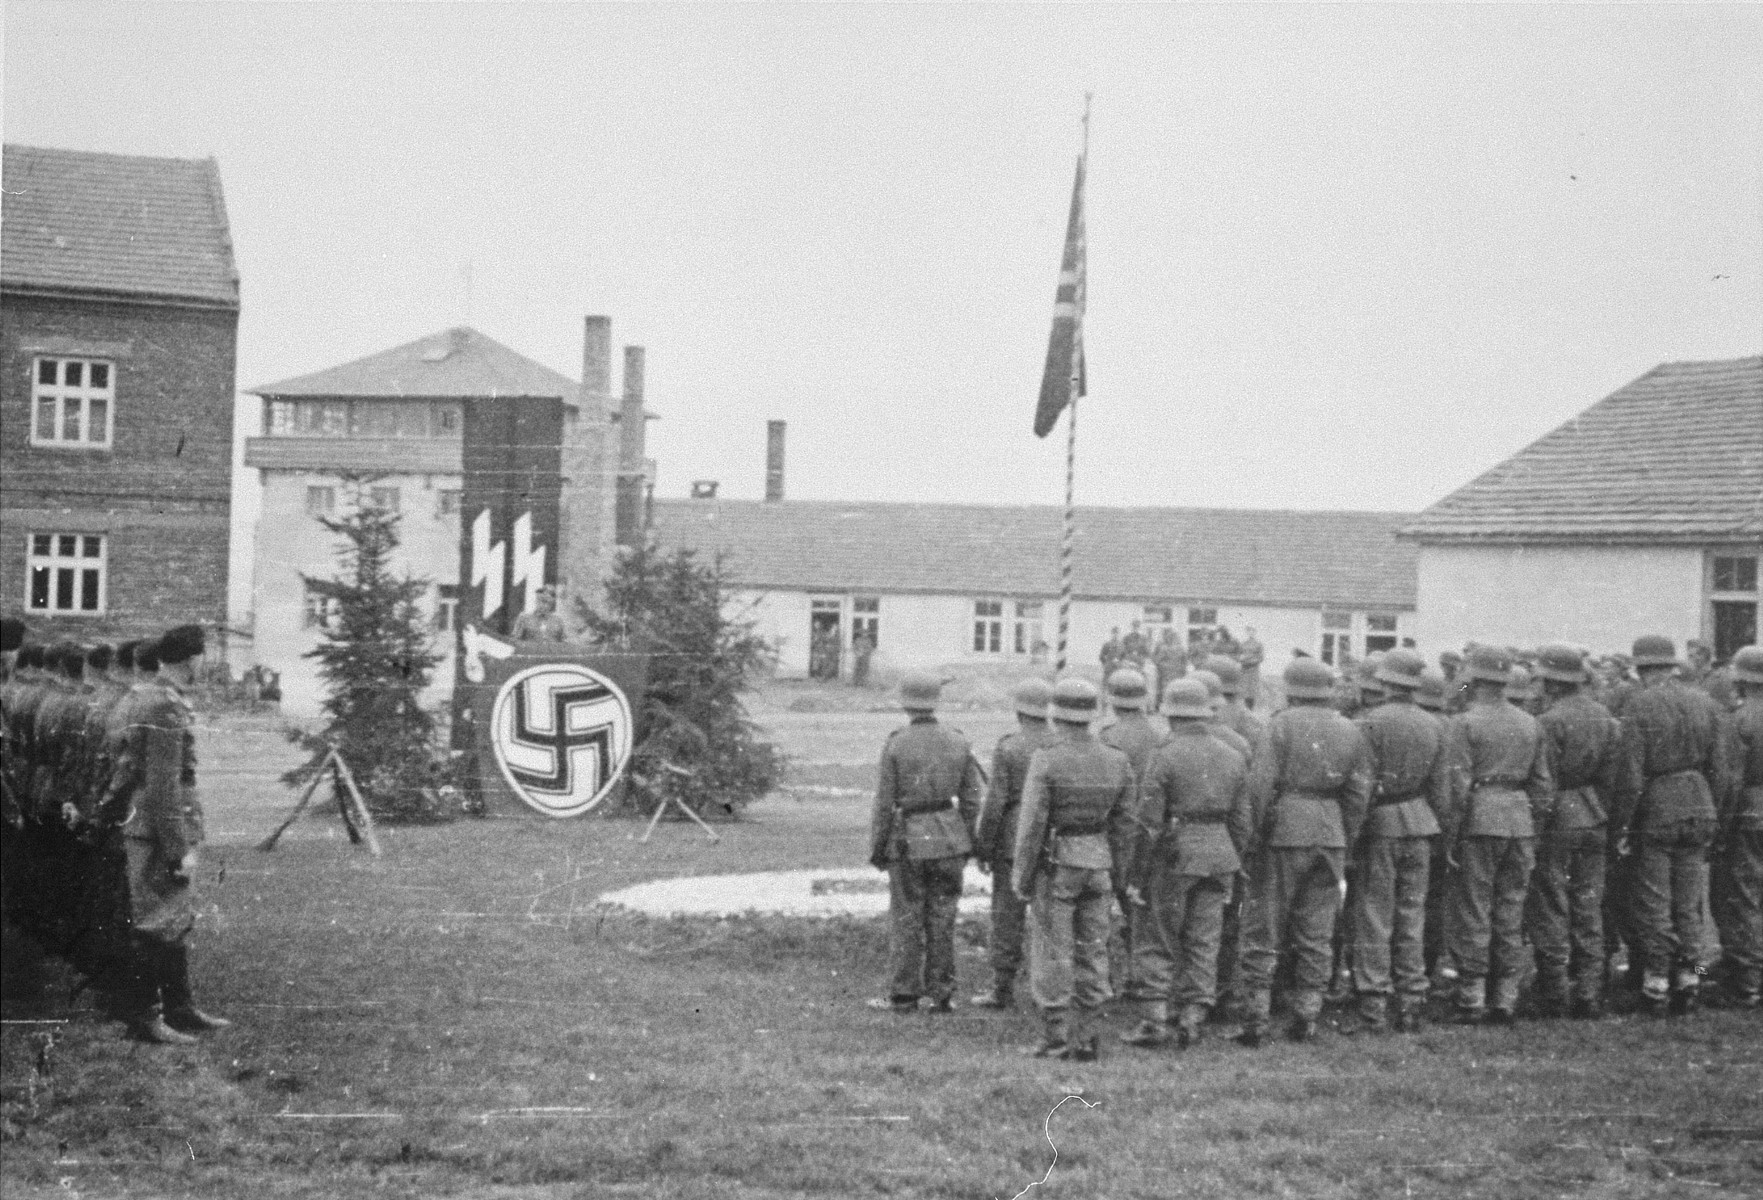 Commandant Amon Goeth delivers a speech to the SS staff in the Plaszow concentration camp.